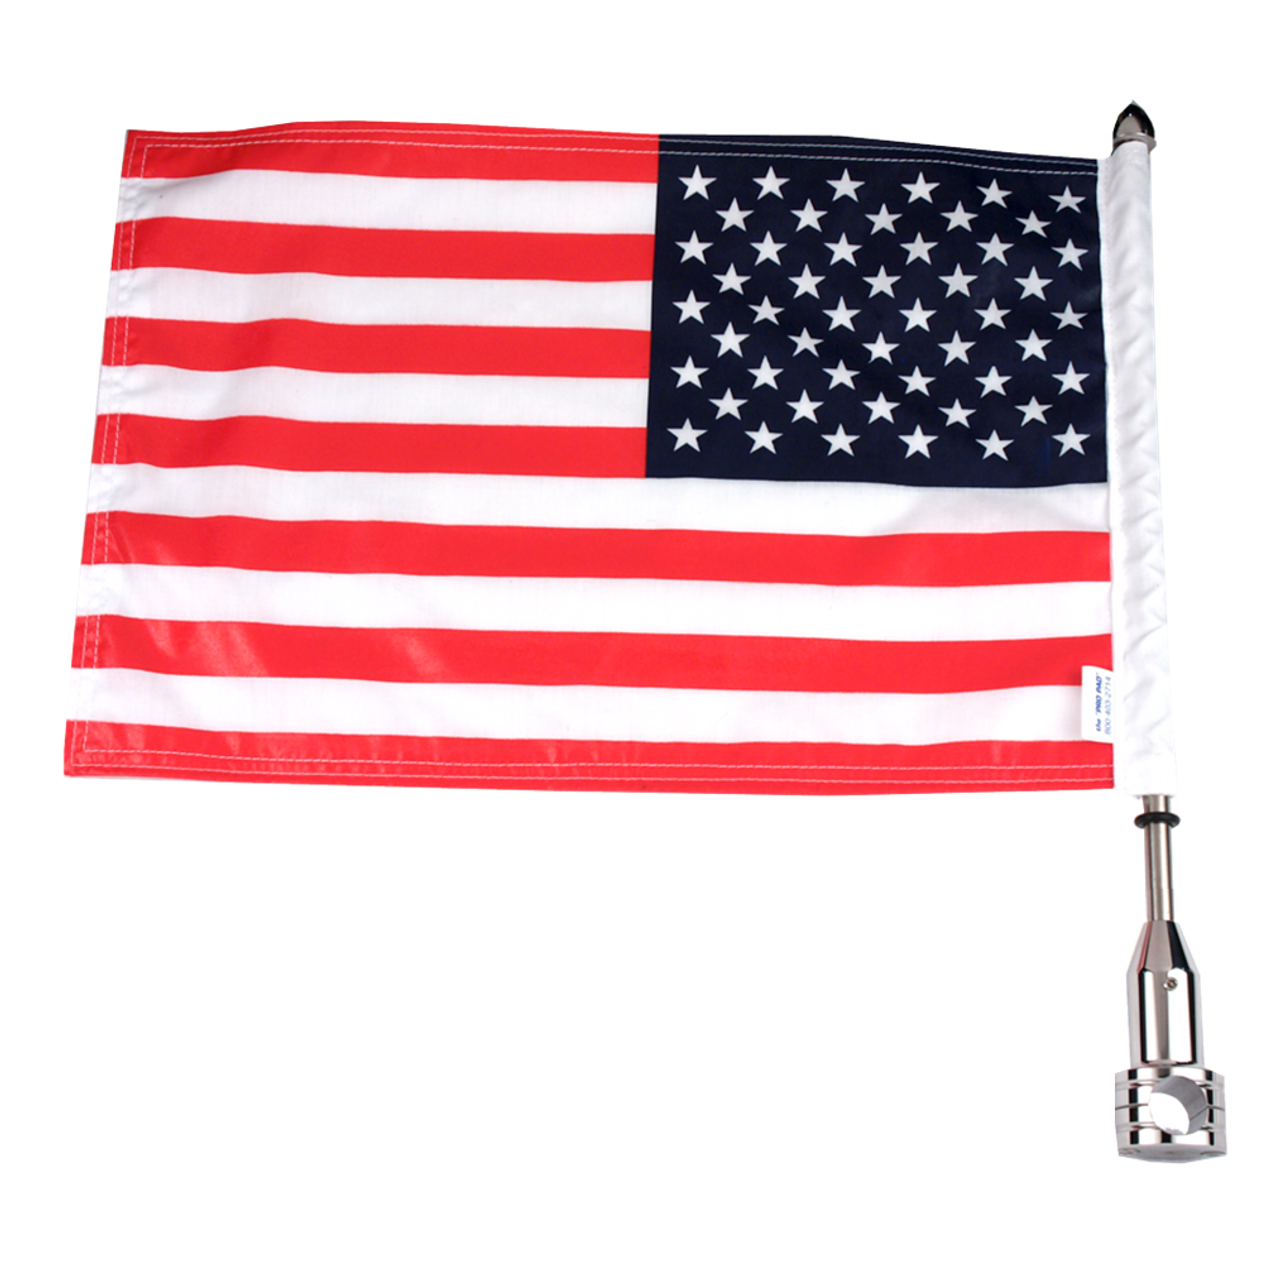 """#RFM-FXD115 with 10""""x15"""" USA parade flag, 13"""" pole and standard cone topper"""